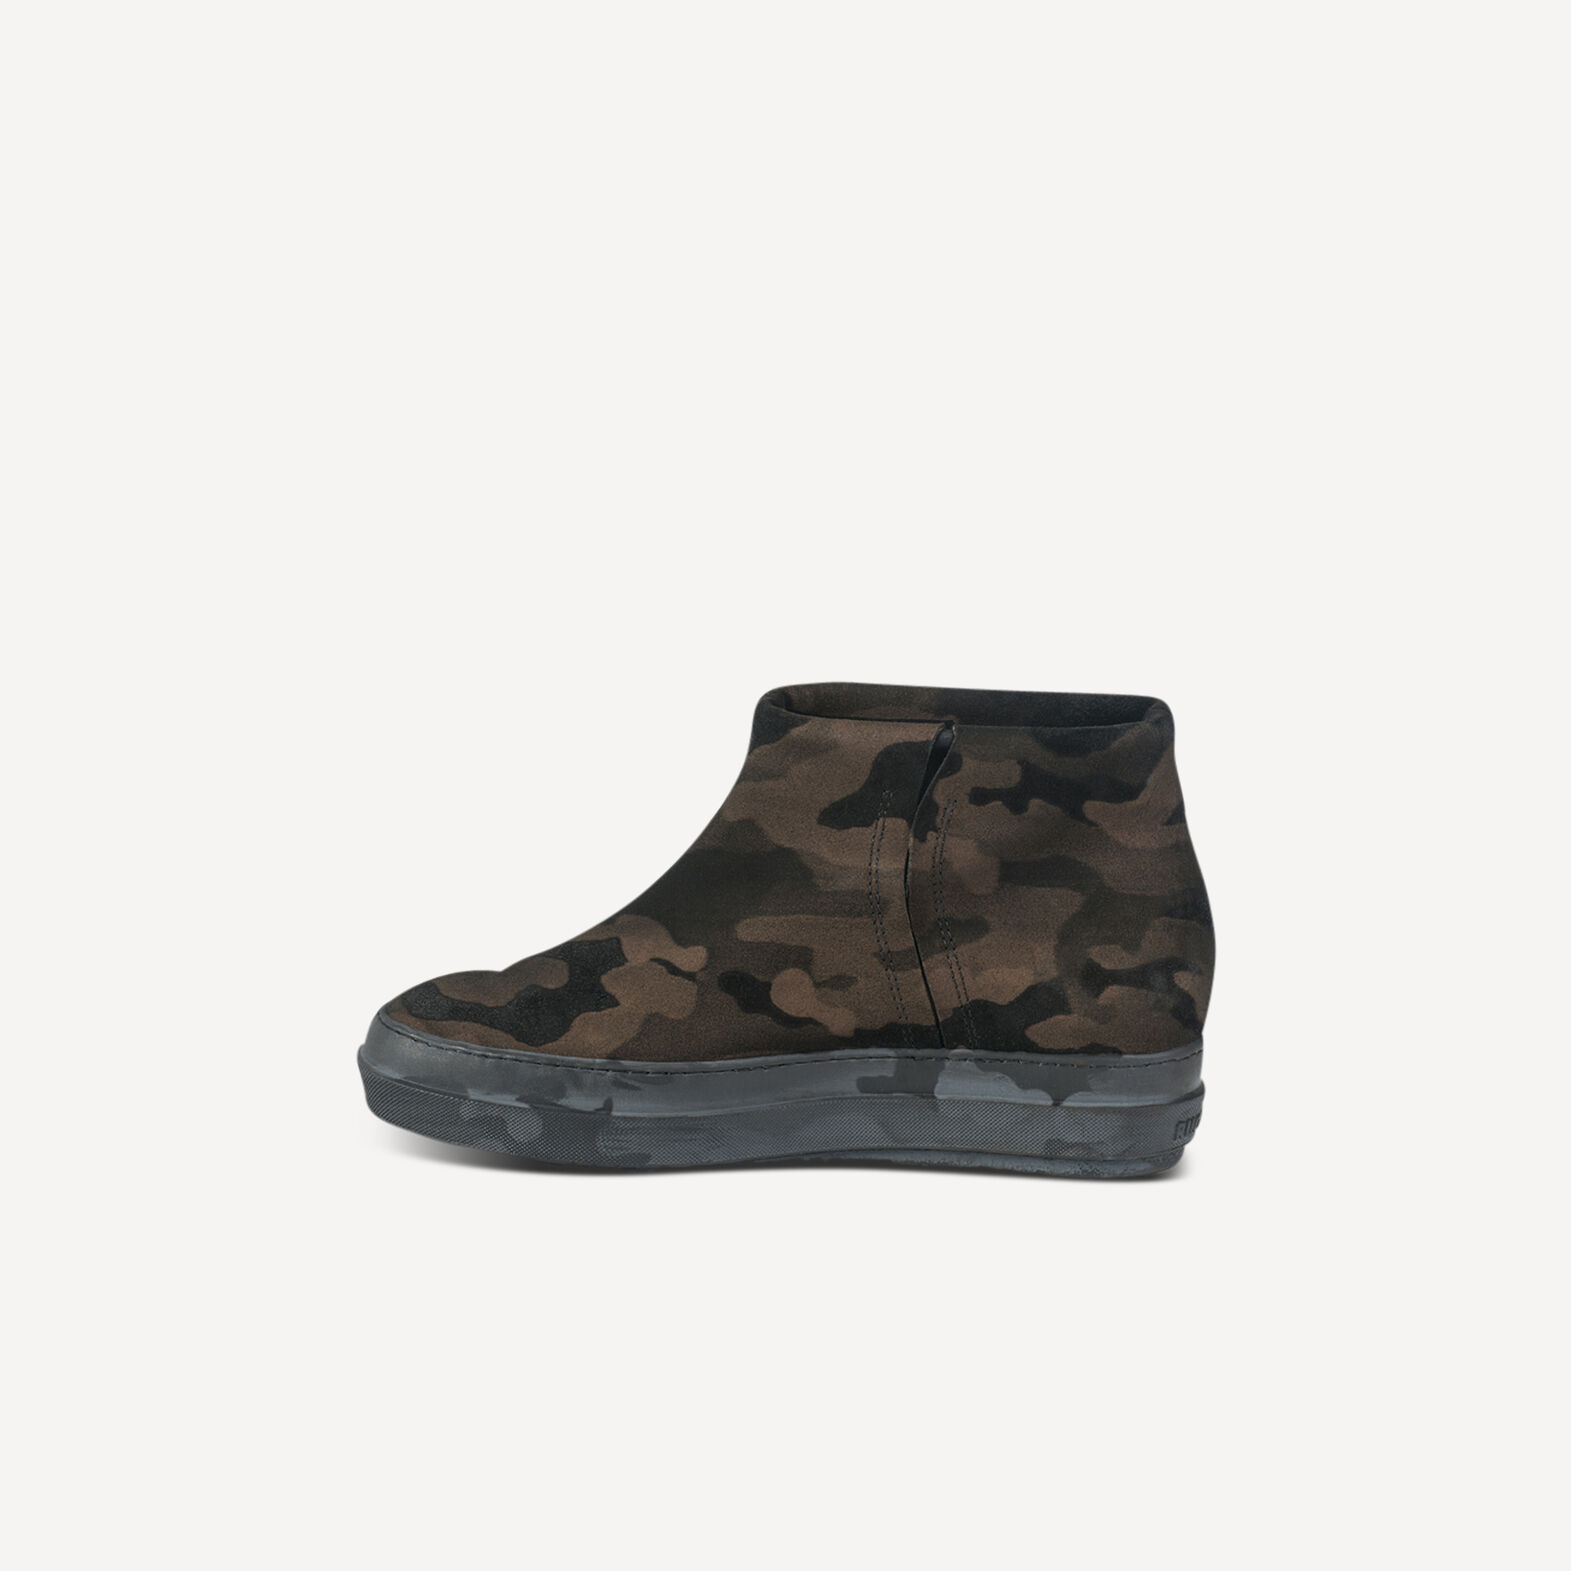 Pure Nvl Pr W Limited Camouflage